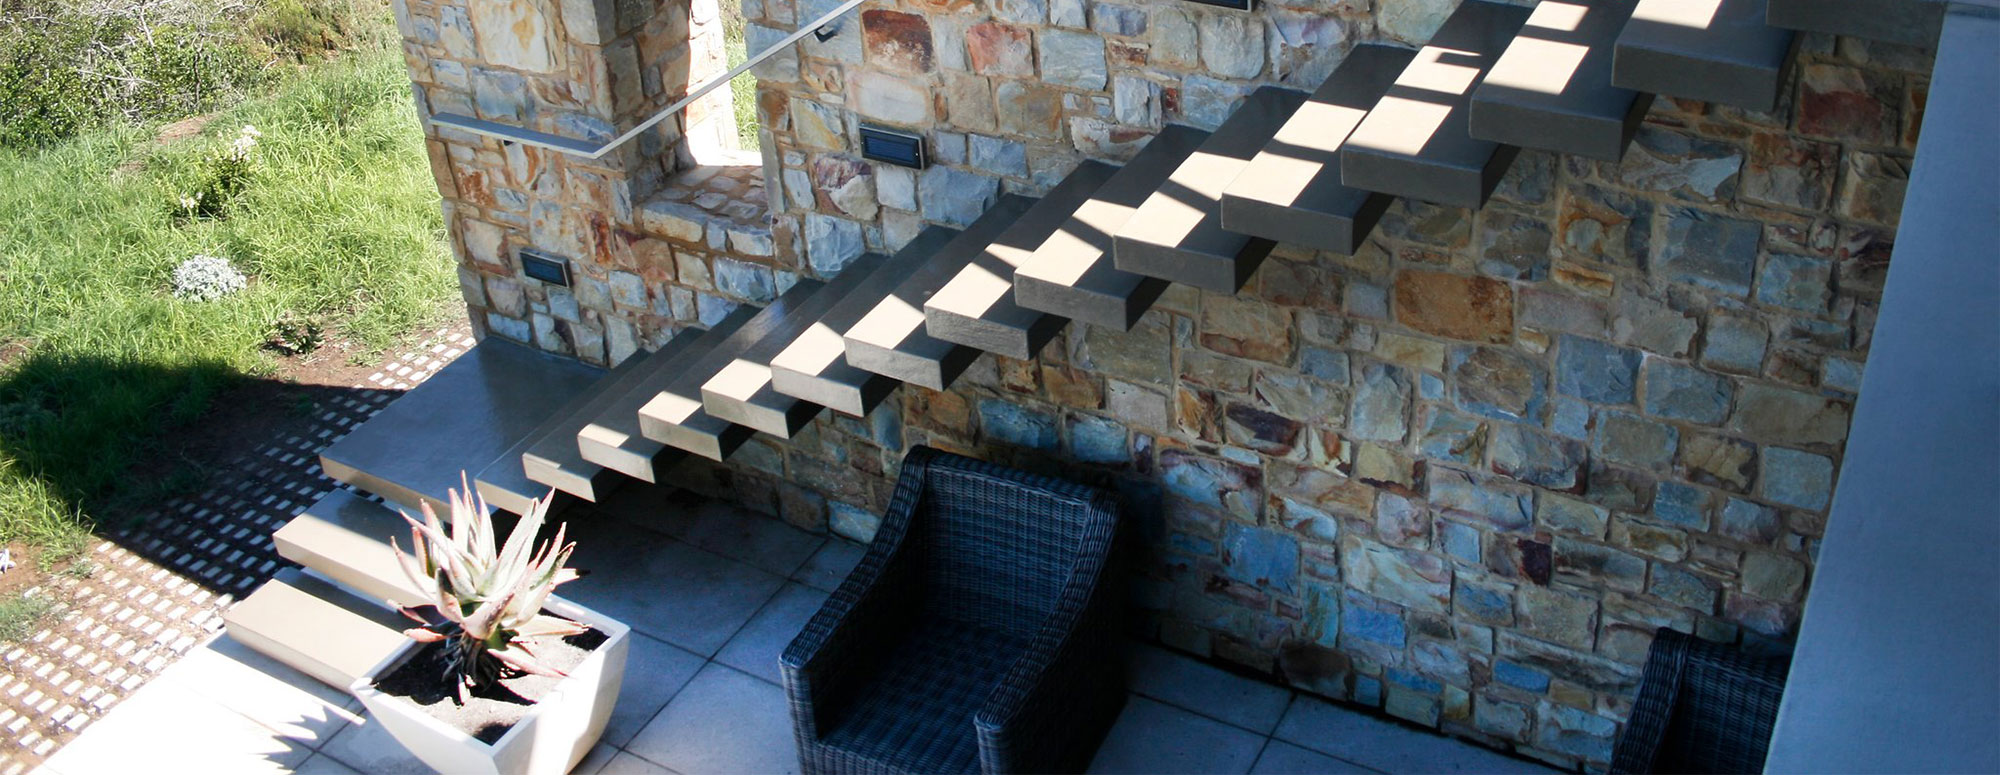 Floating staircase build into Stonework wall